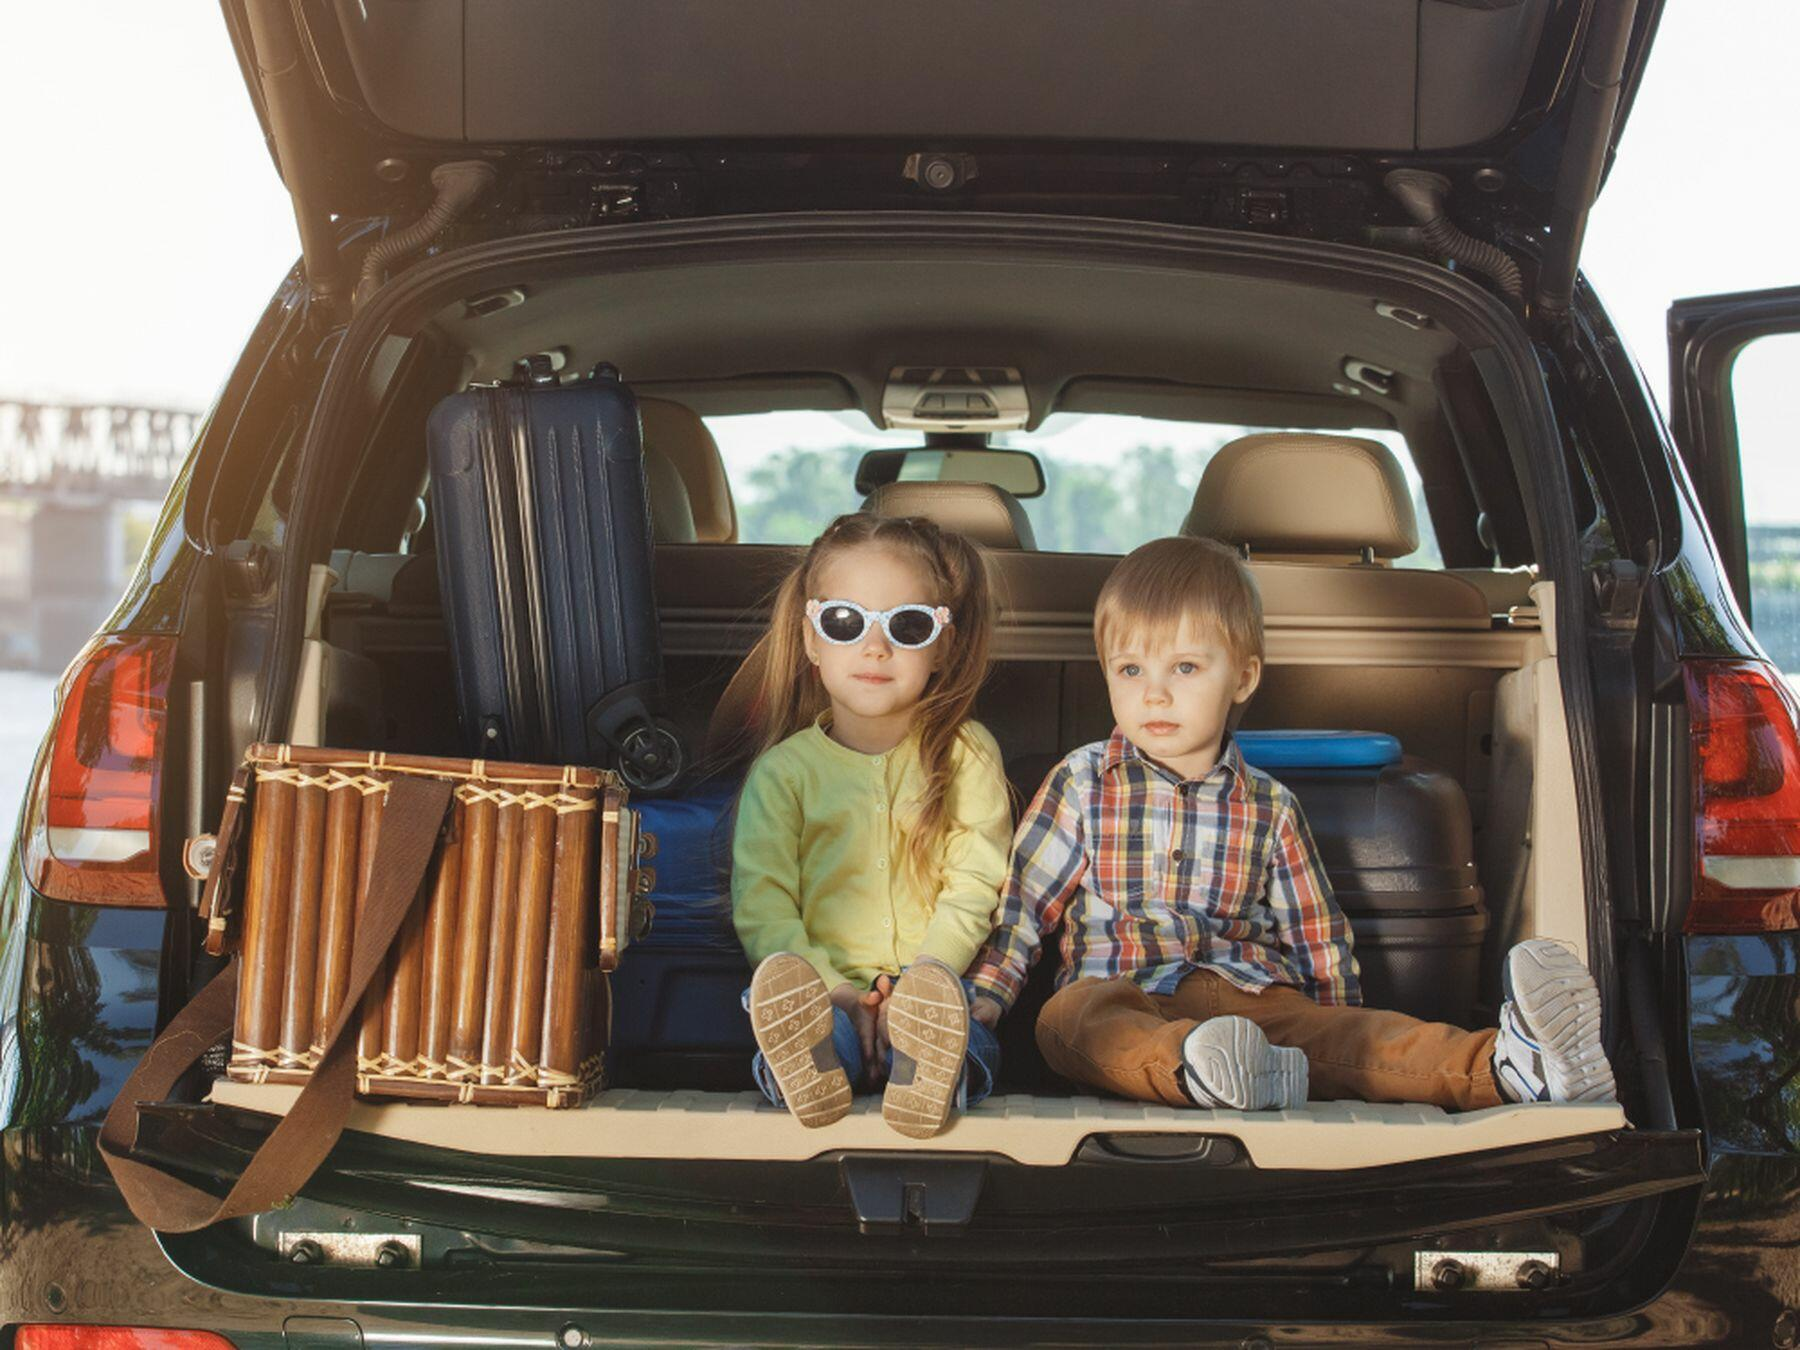 Two children at the back of a van with luggage